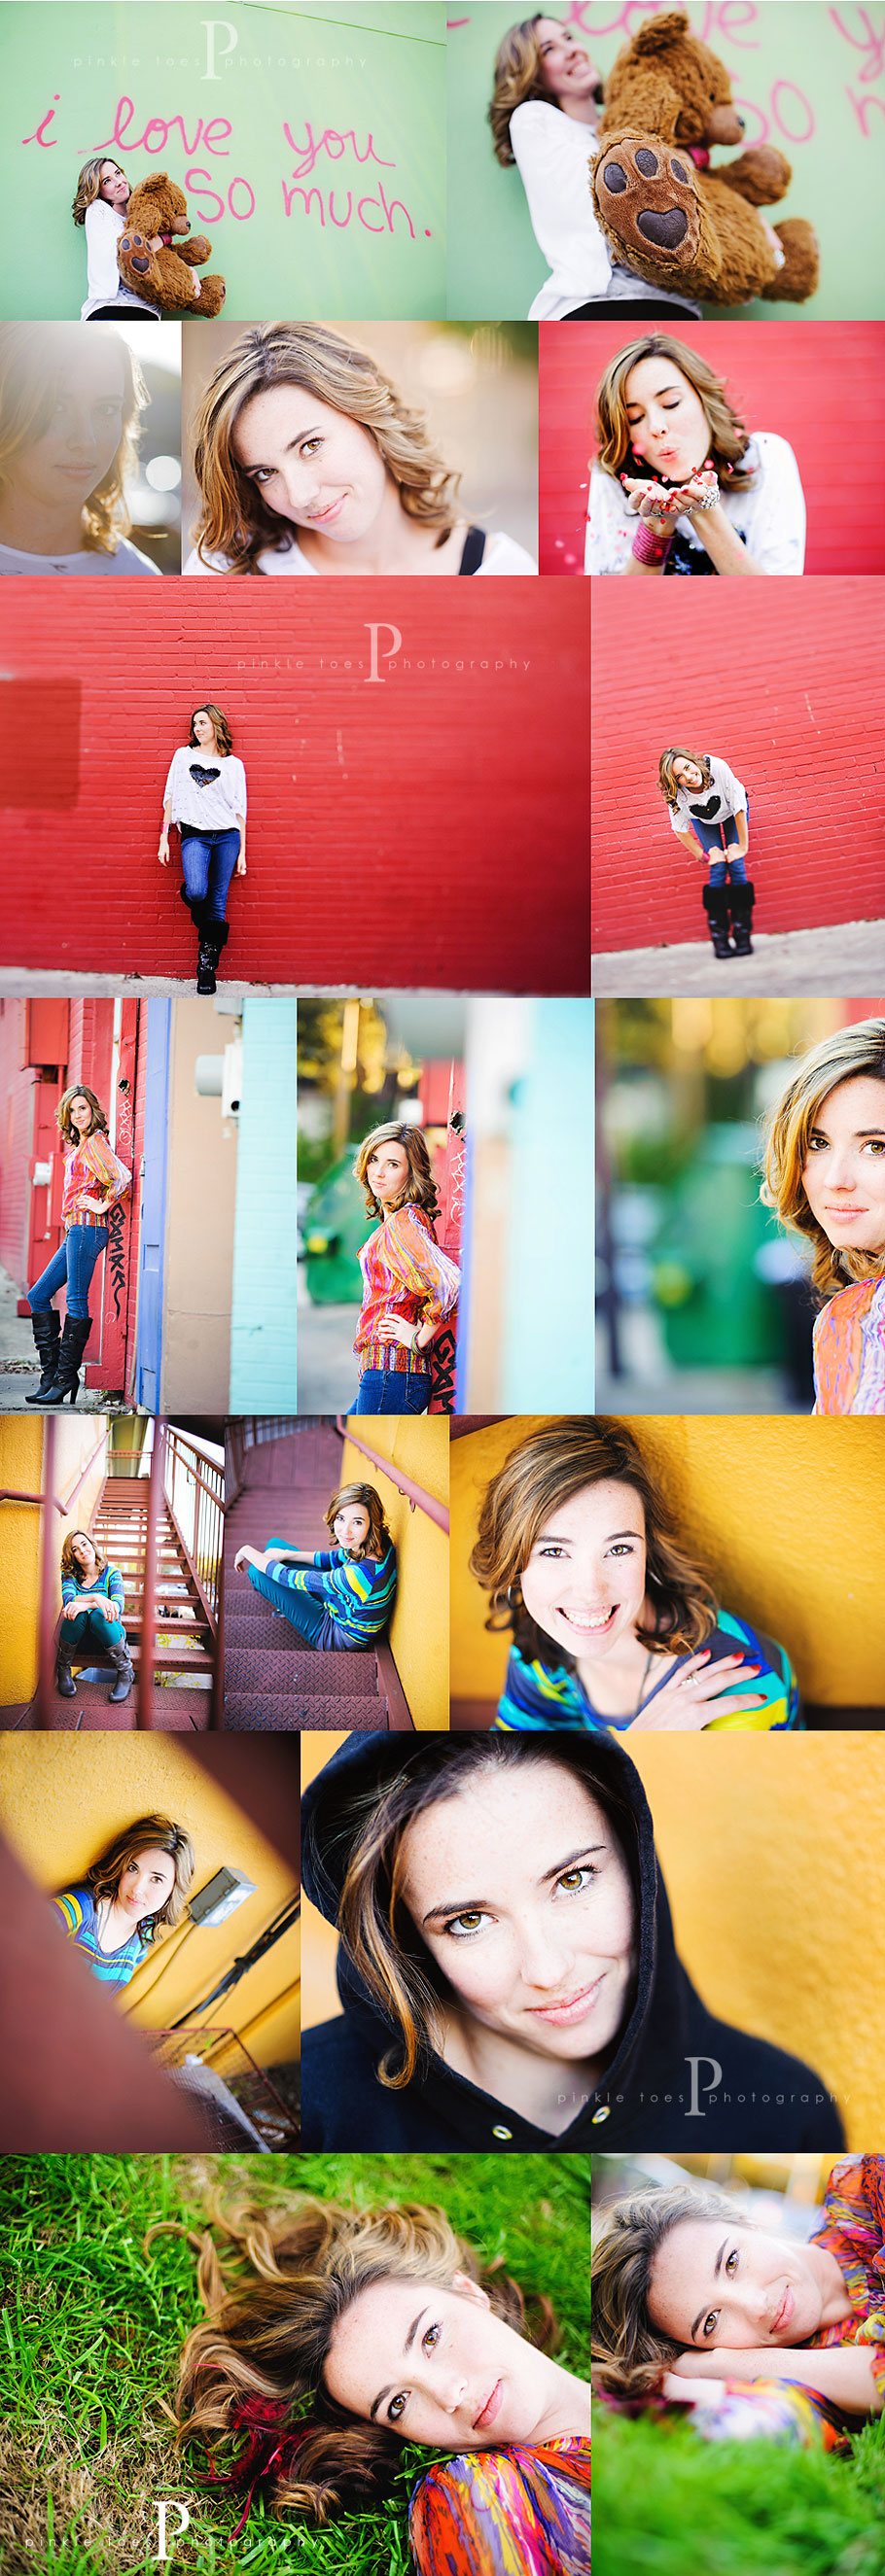 b-unique-urban-austin-senior-pictures-photography-portraits-westlake-lake-travis.jpg